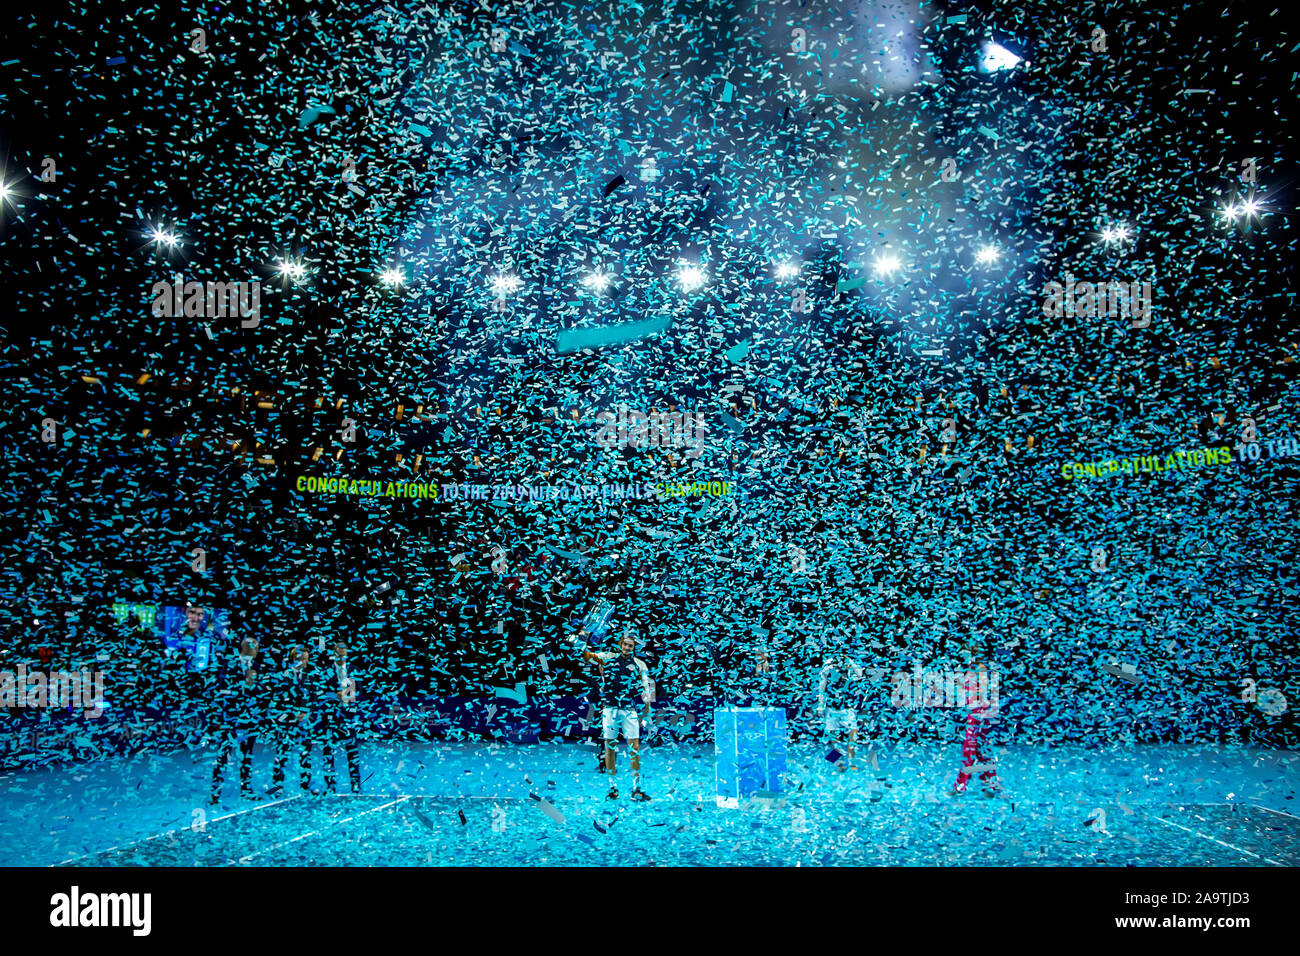 Arena. London, UK. 17th Nov, 2019. Nitto ATP Tennis Finals; Stefanos Tsitsipas (Greece) holds the ATP trophy - Editorial Use Credit: Action Plus Sports/Alamy Live News Stock Photo